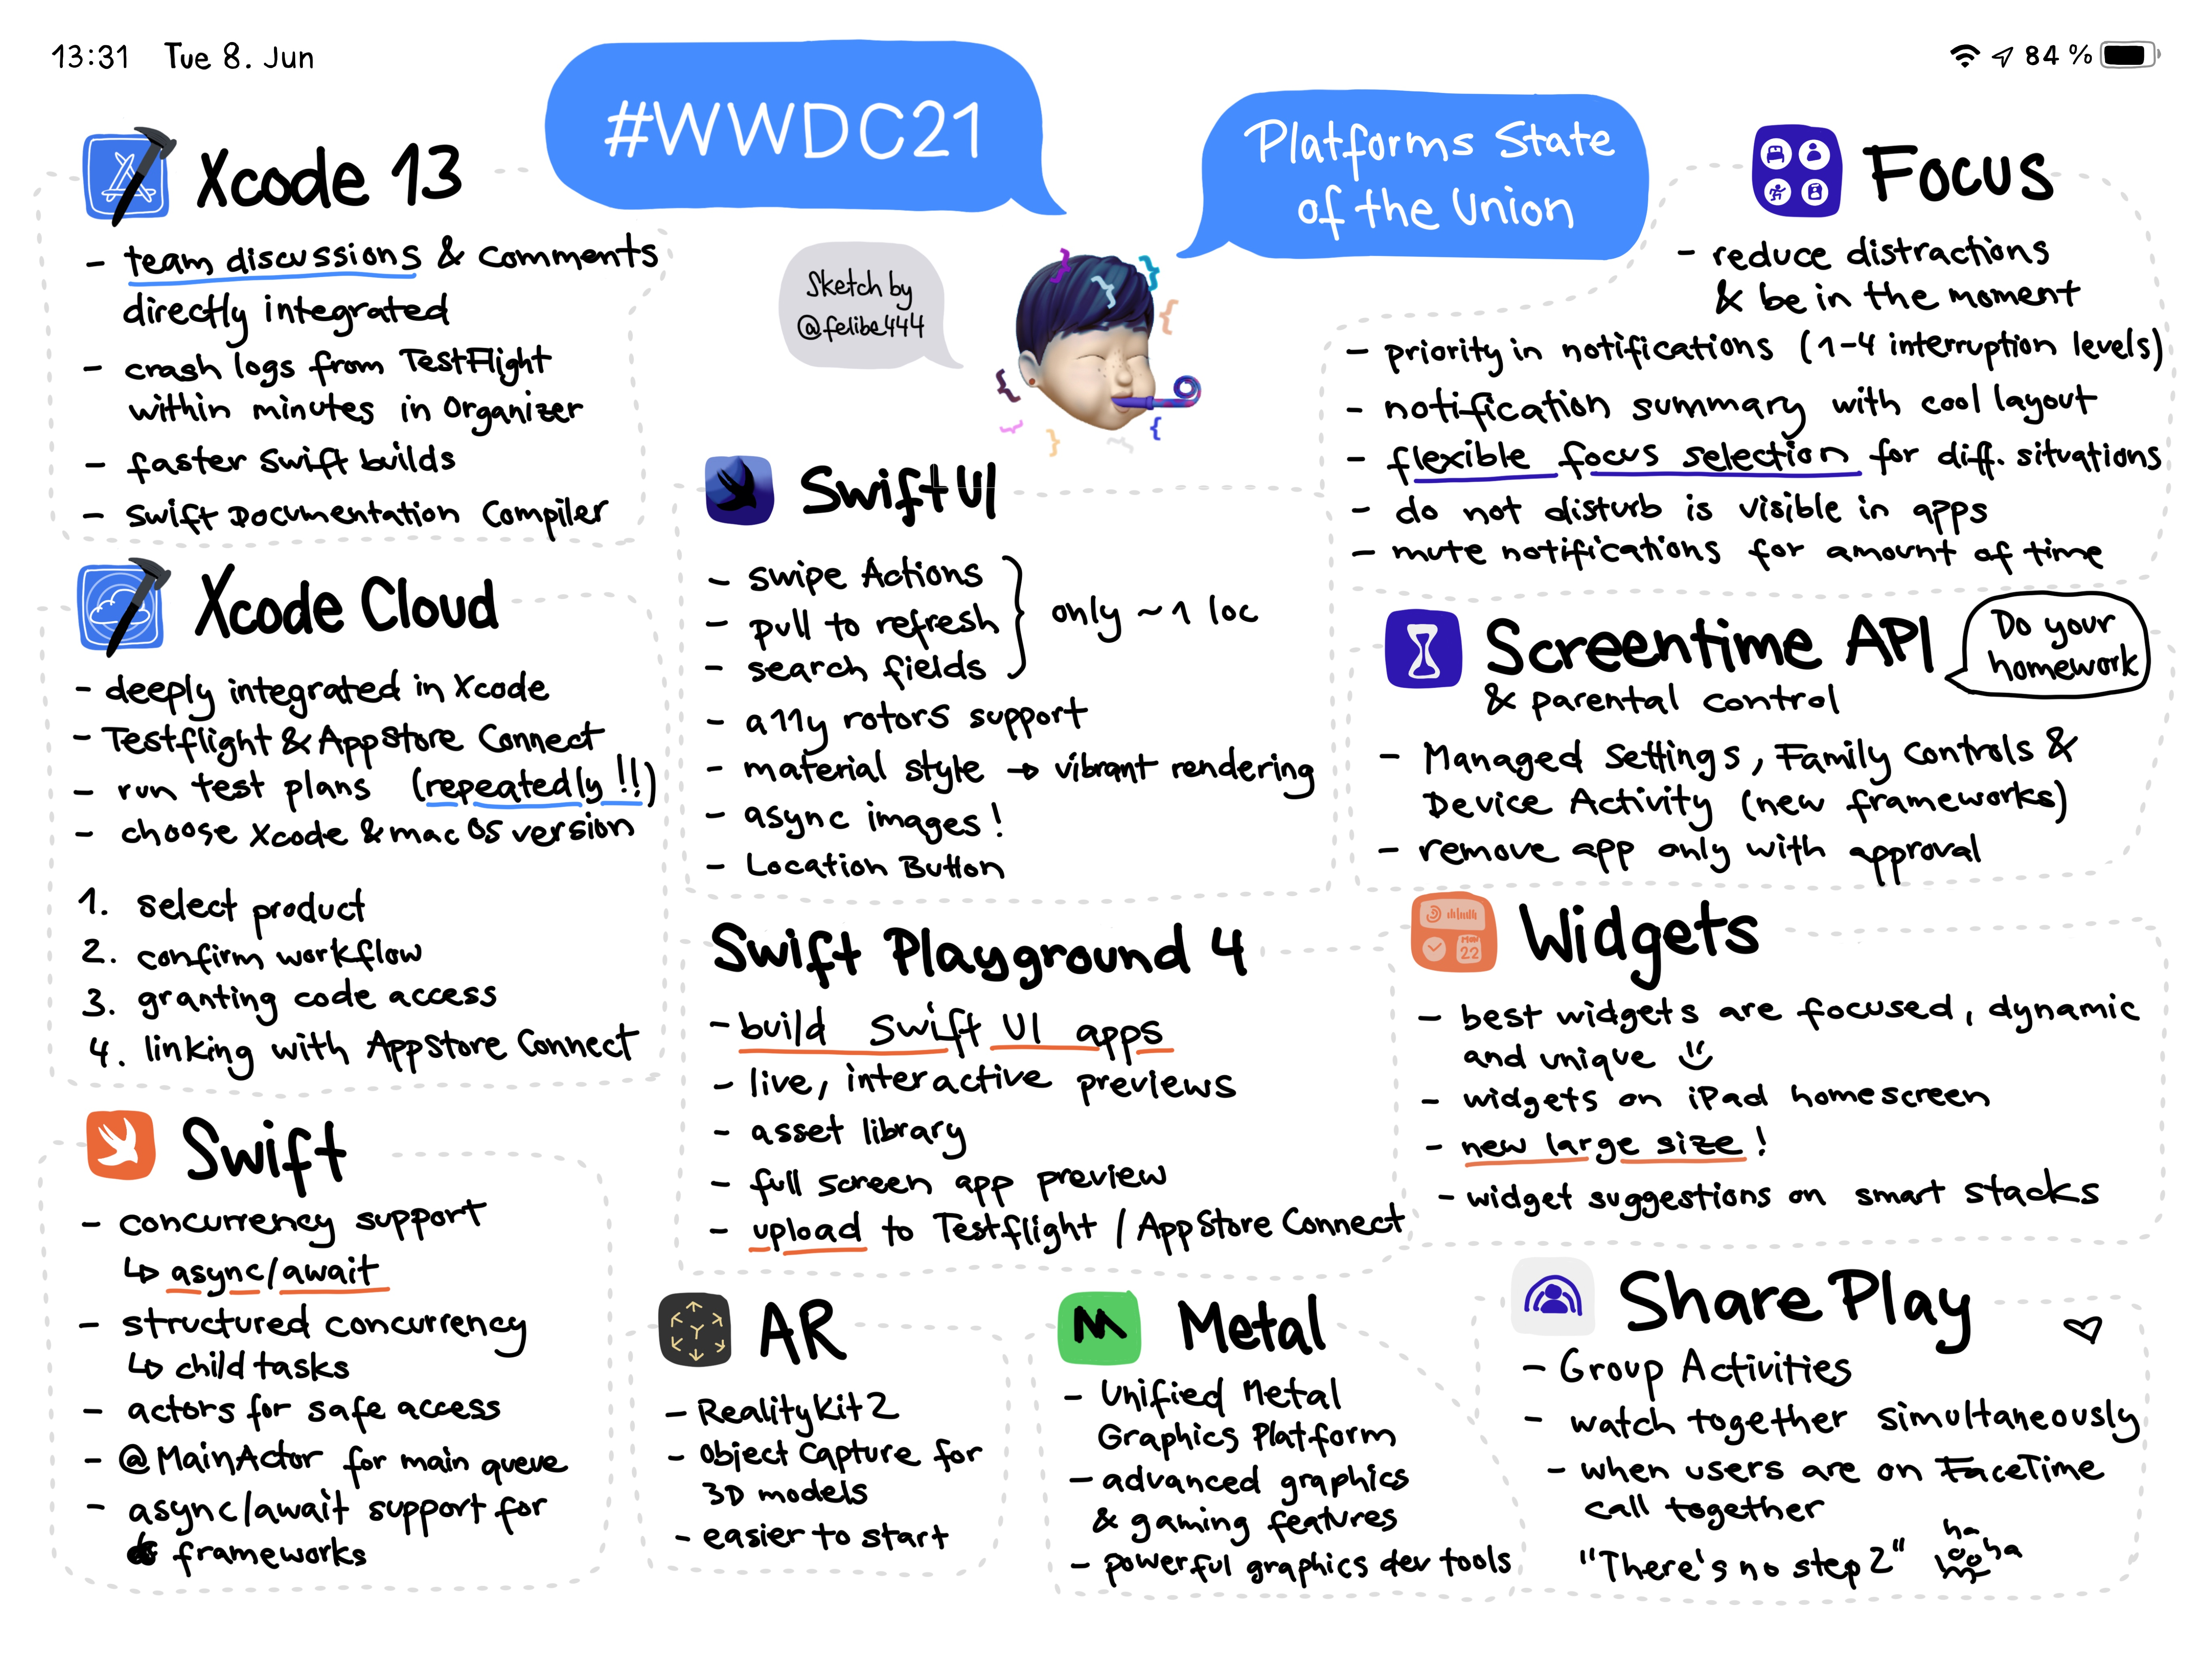 Sketchnote of WWDC 2021 Platforms State of the Union with detailed announcements about Xcode 13, Xcode Cloud, Swift, SwiftUI, Swift Playground 4, AR, Metal, Focus, Screentime API, Widgets, SharePlay and more